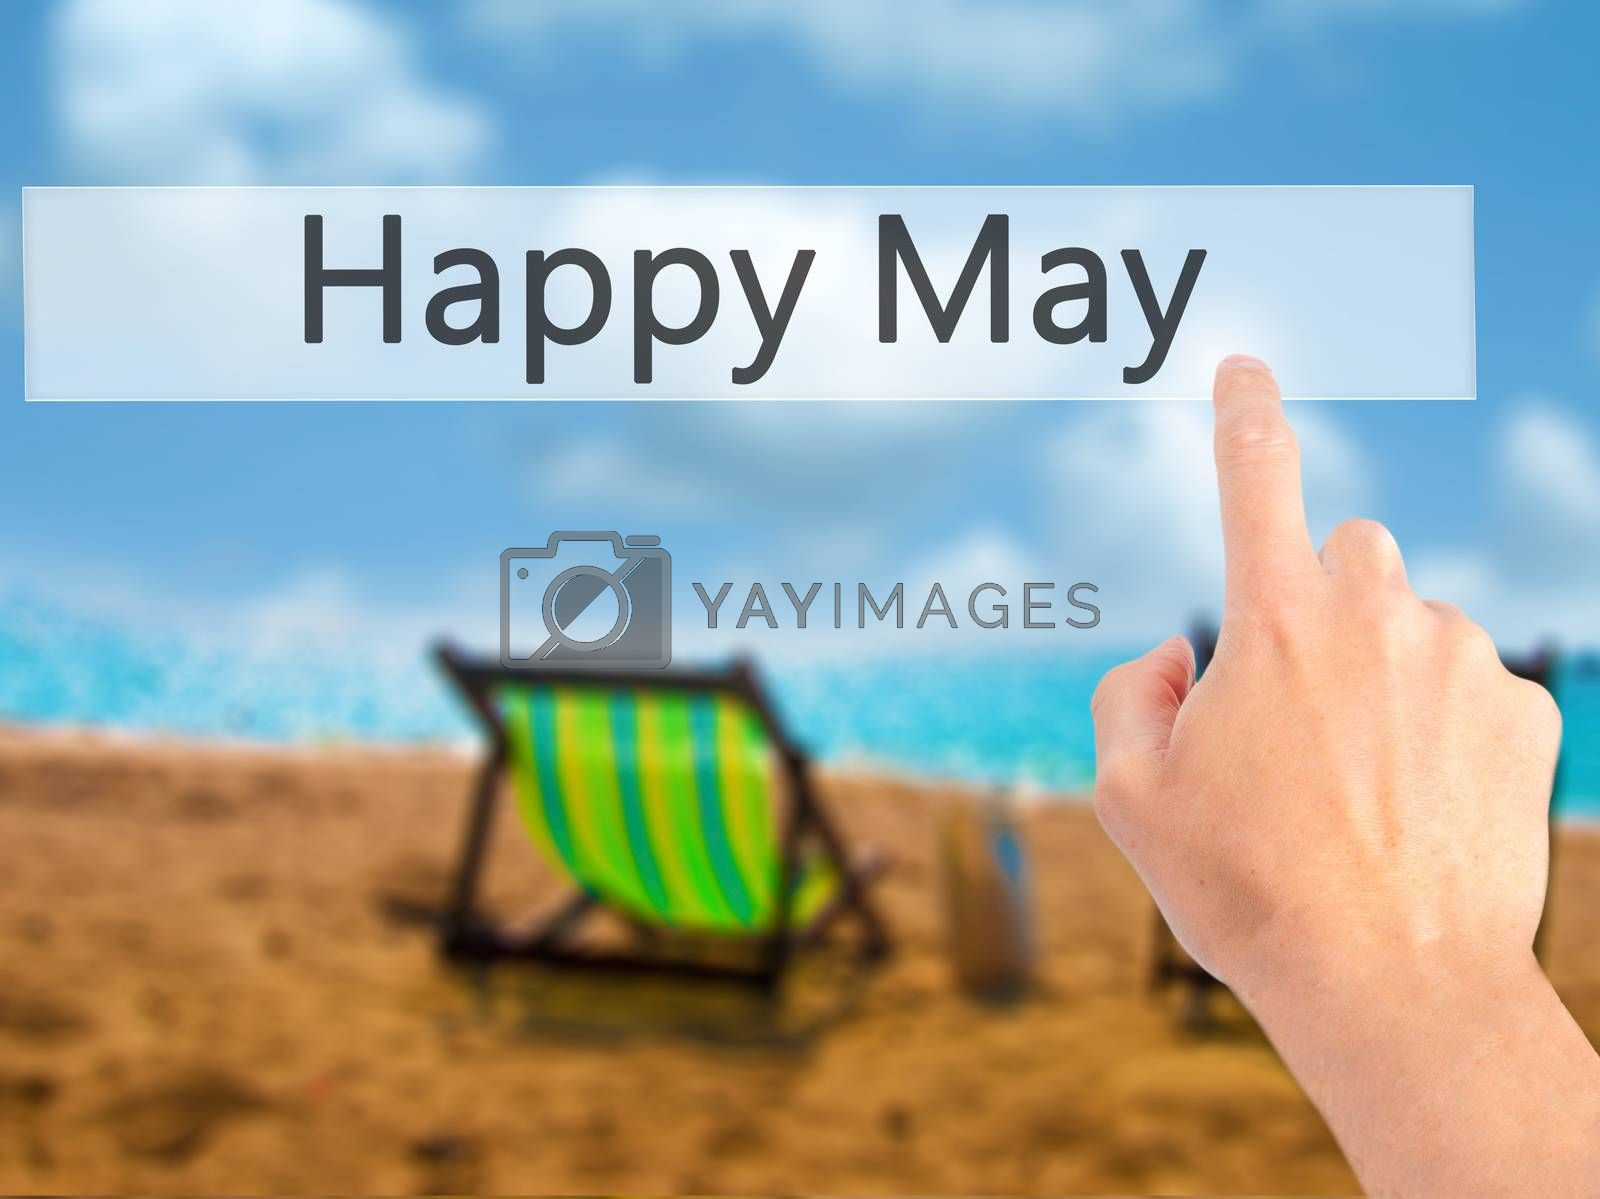 Happy May - Hand pressing a button on blurred background concept by netsay.net